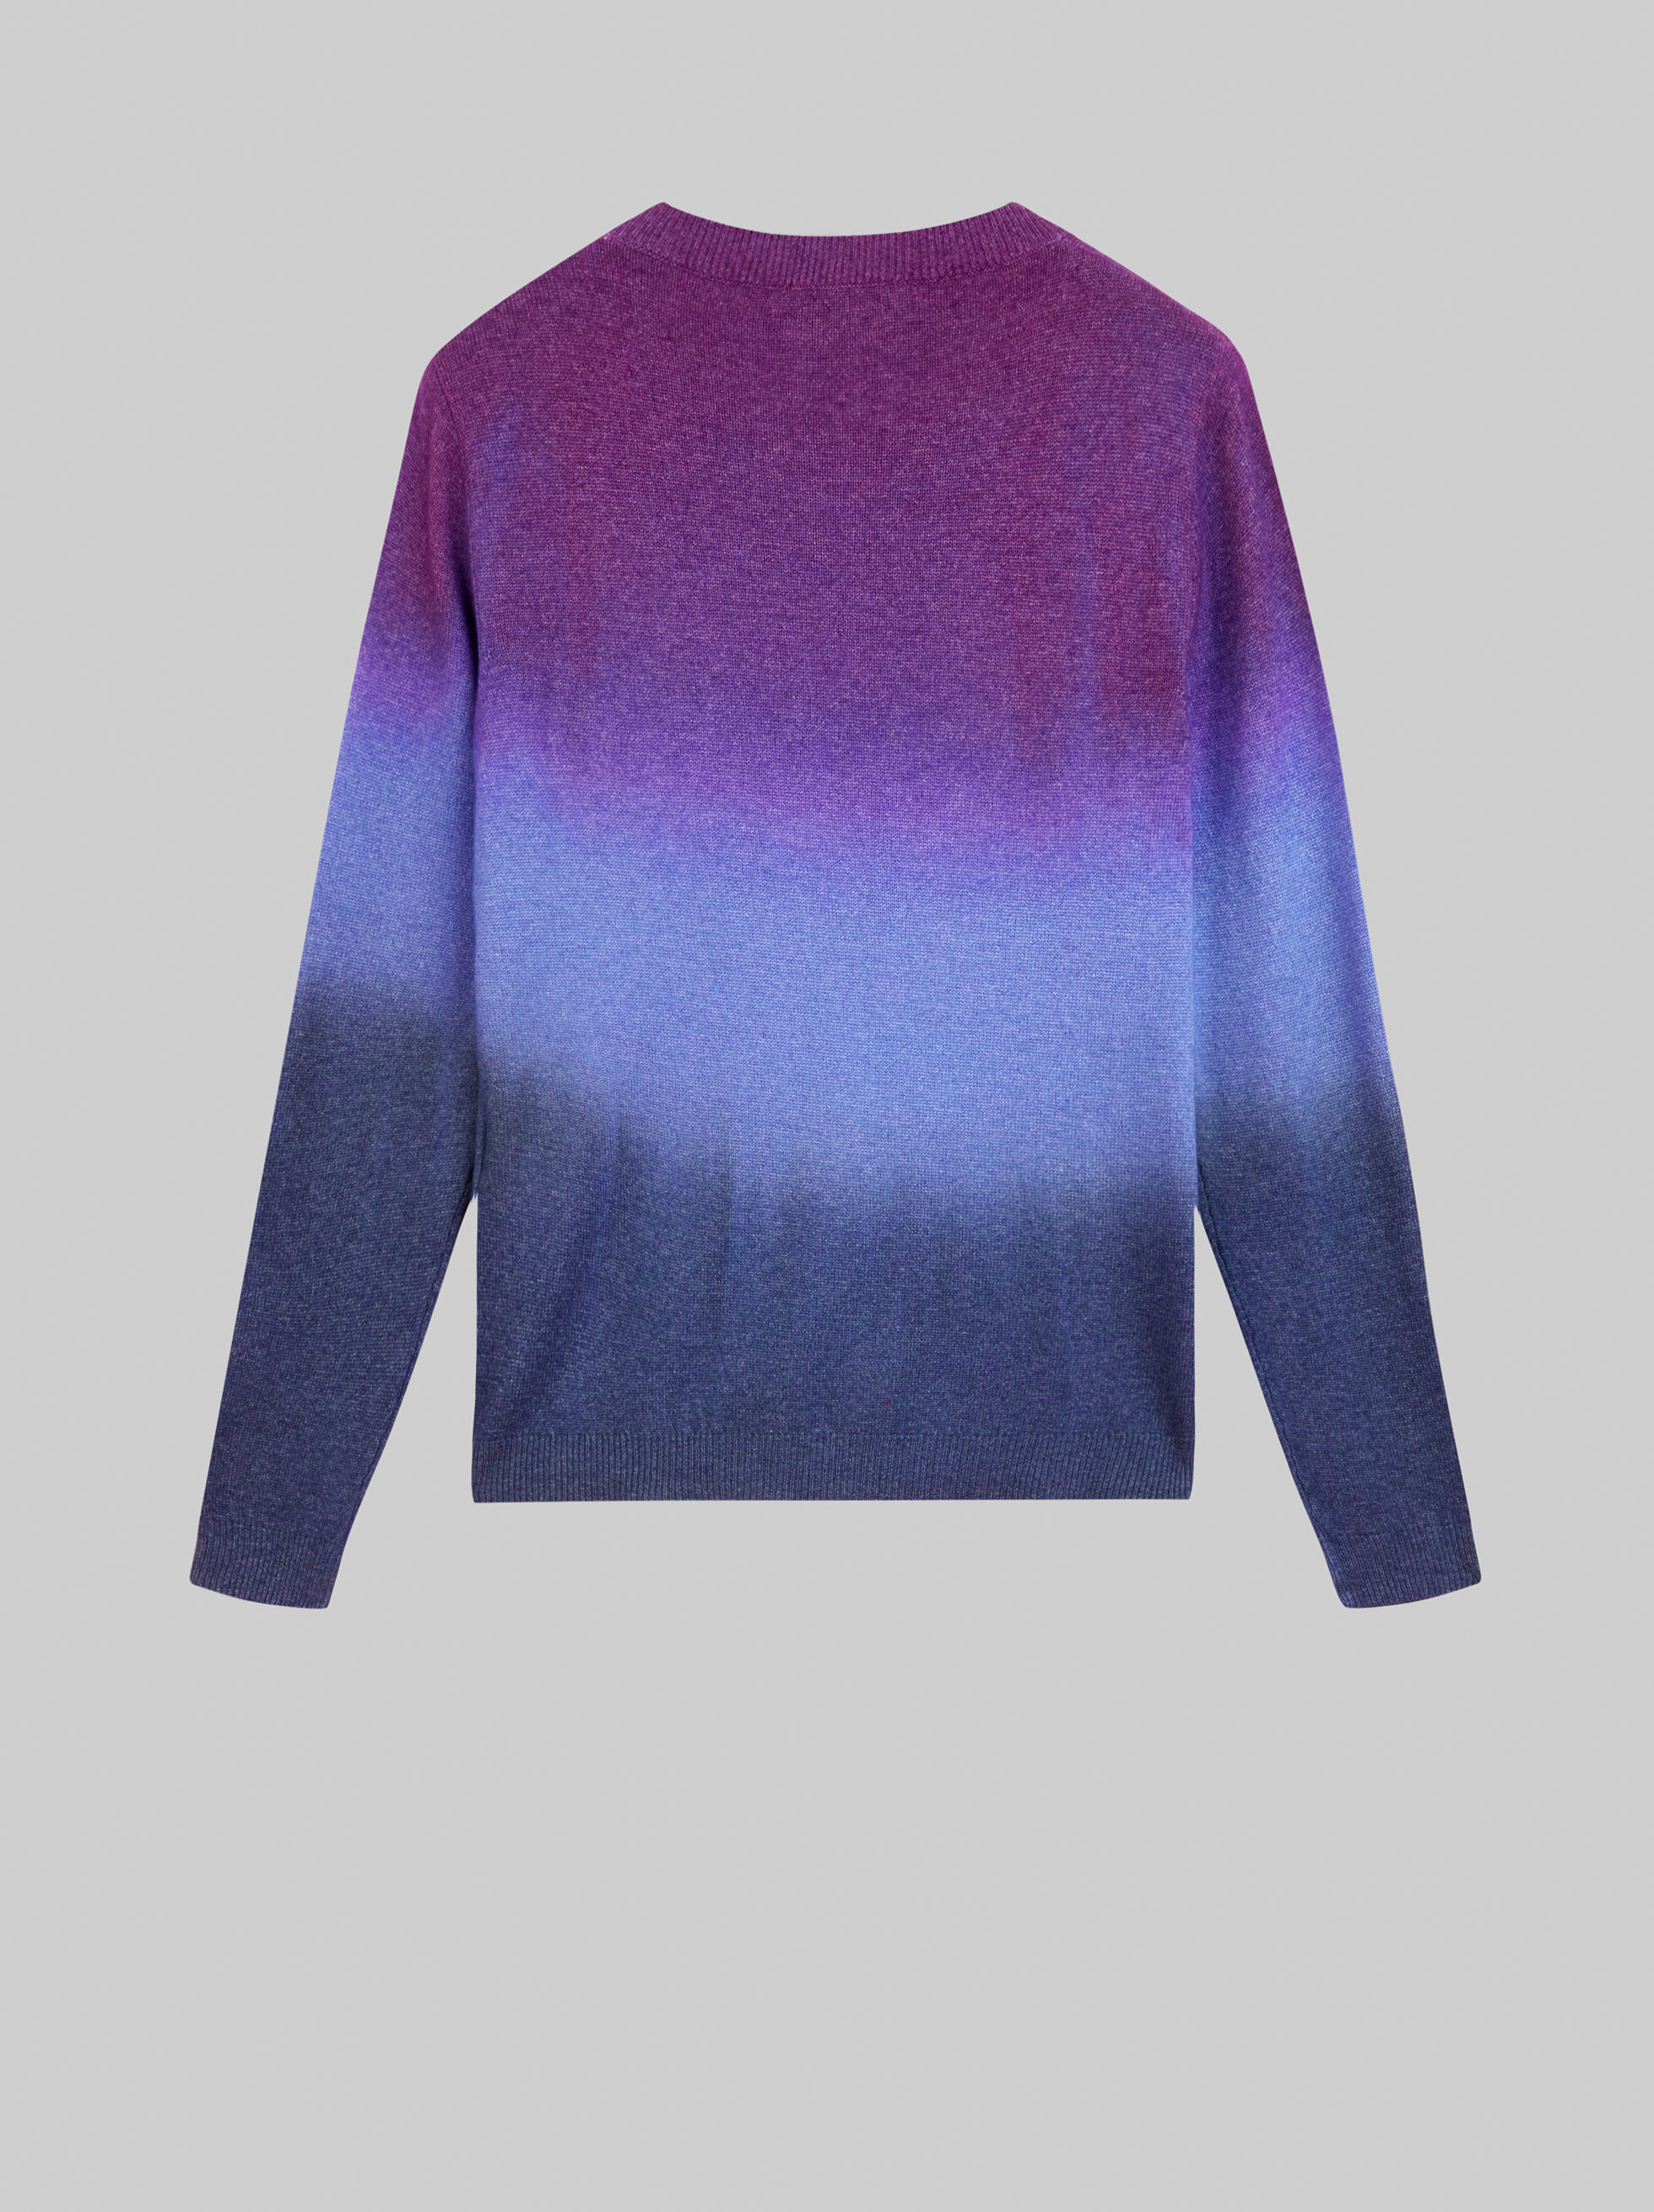 DEGRADÉ WOOL AND CASHMERE JUMPER